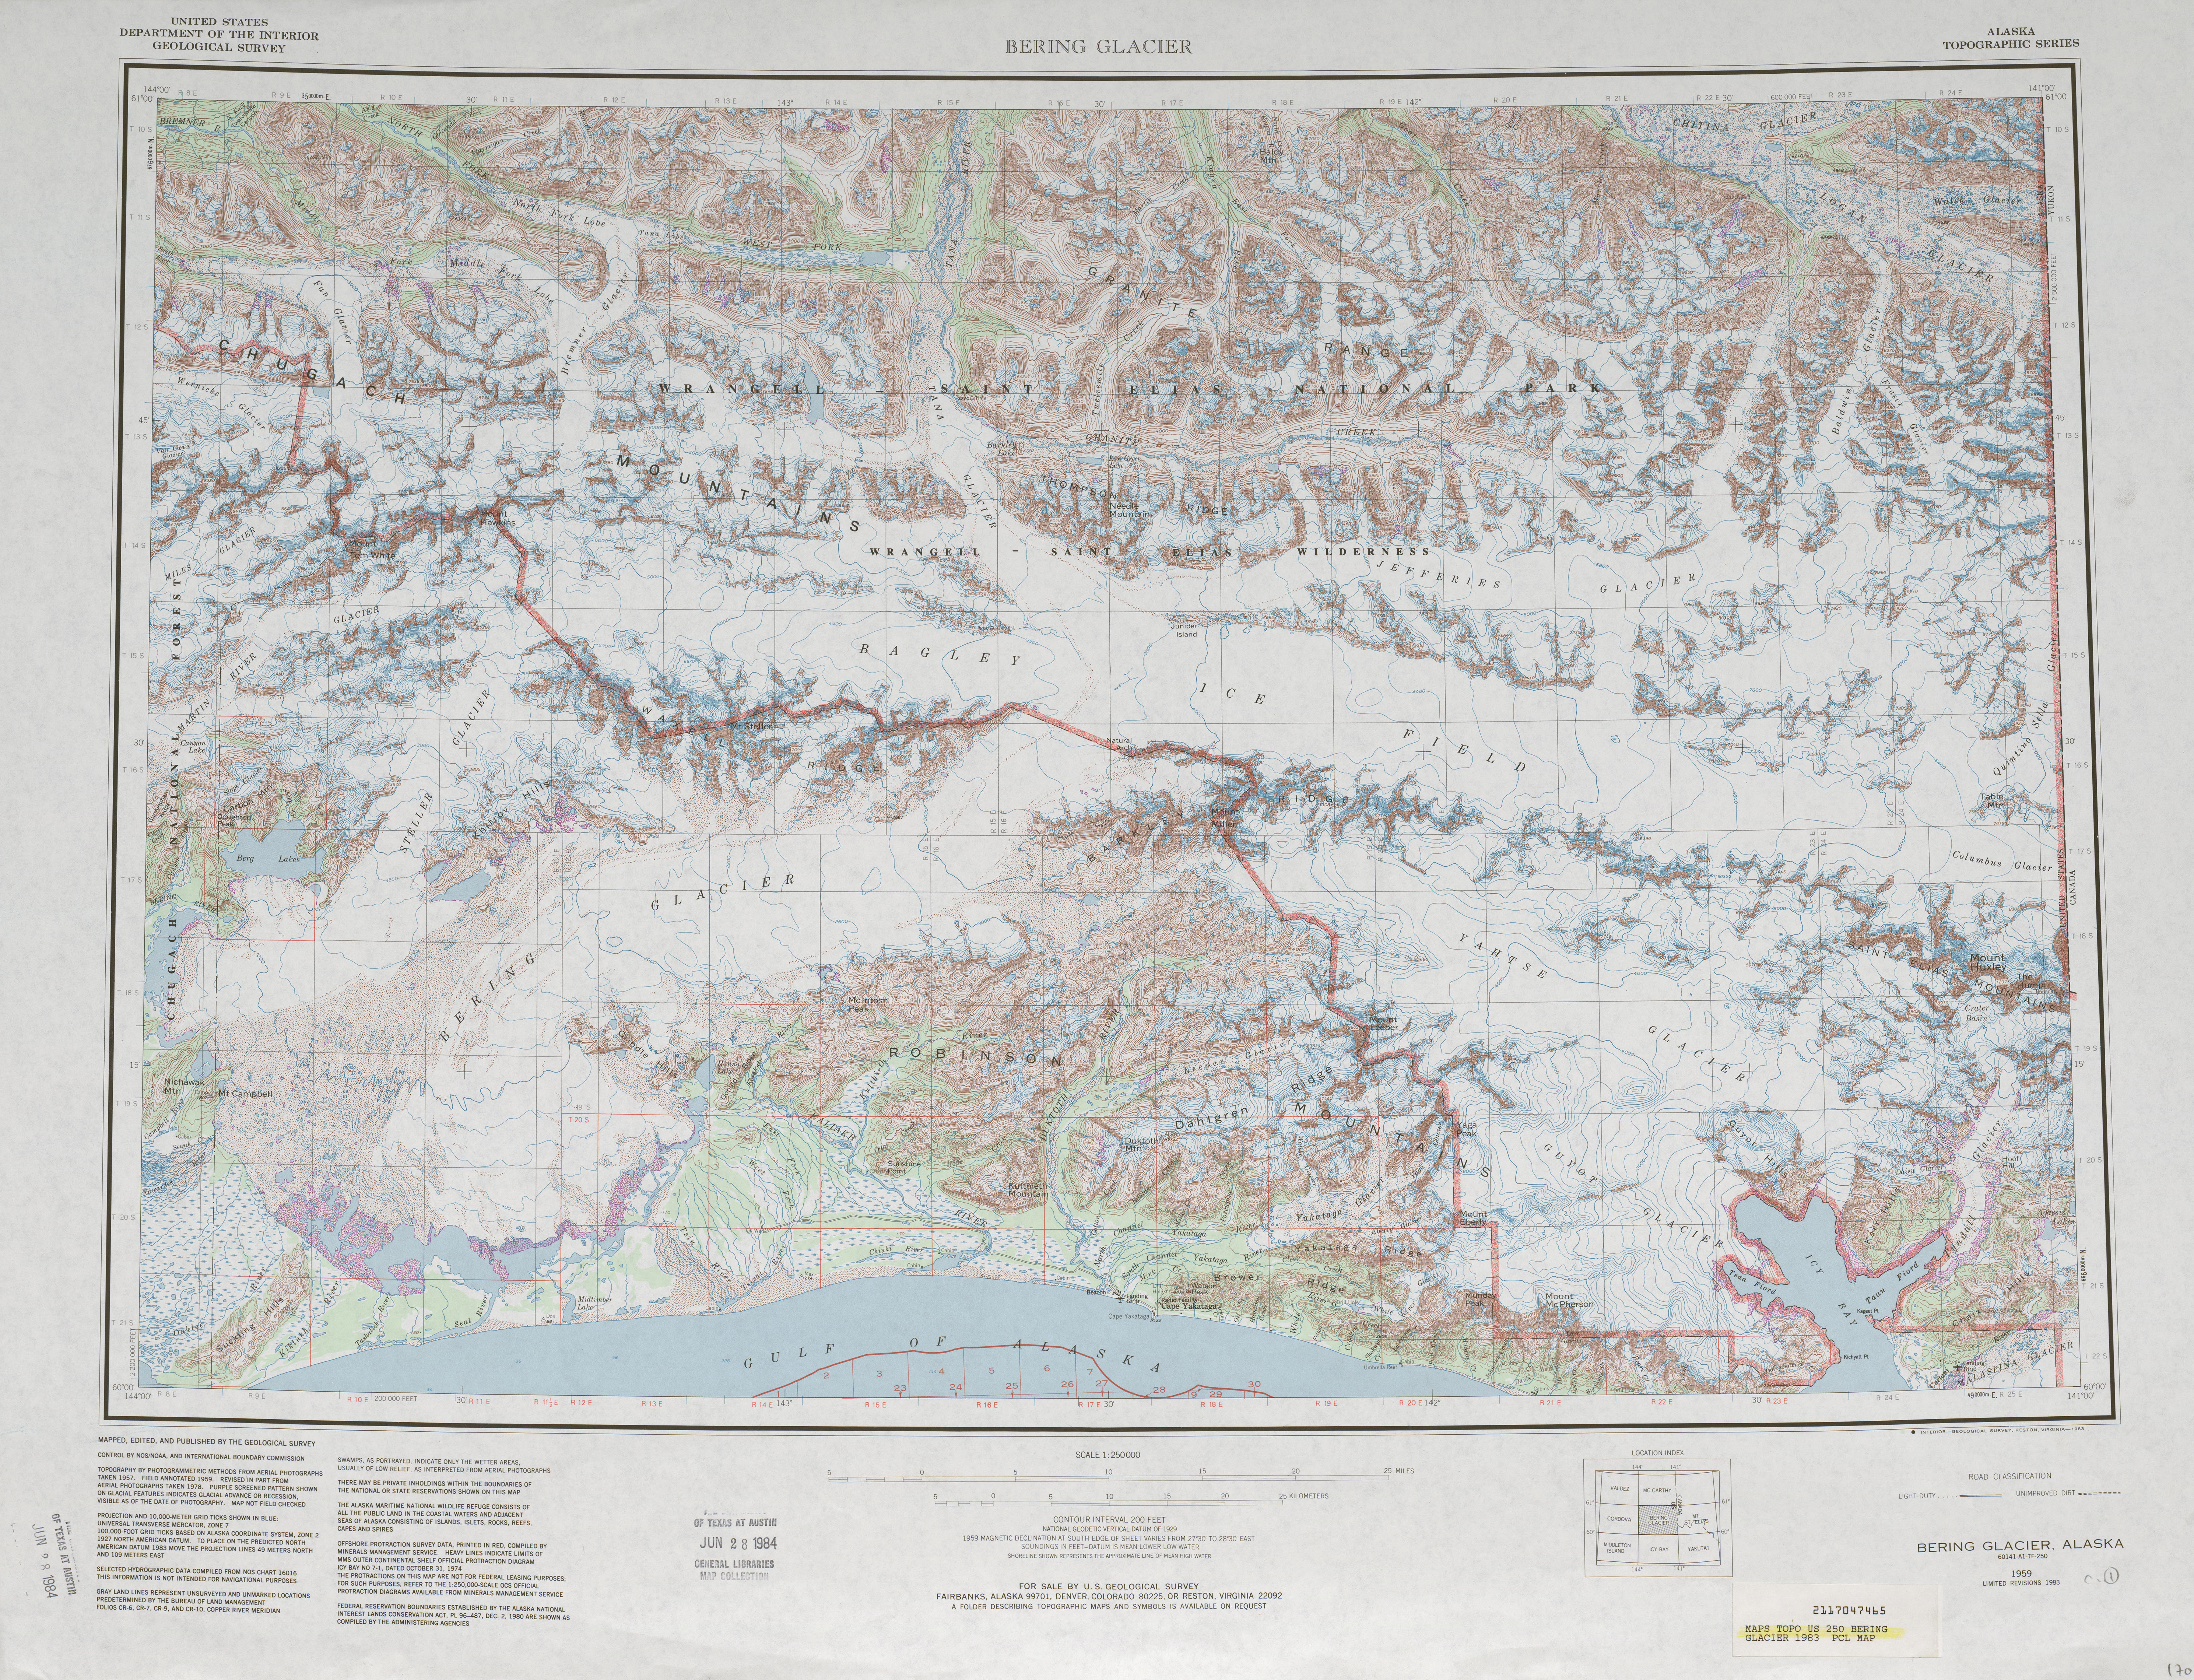 Bering Glacier Topographic Map Sheet, United States 1983